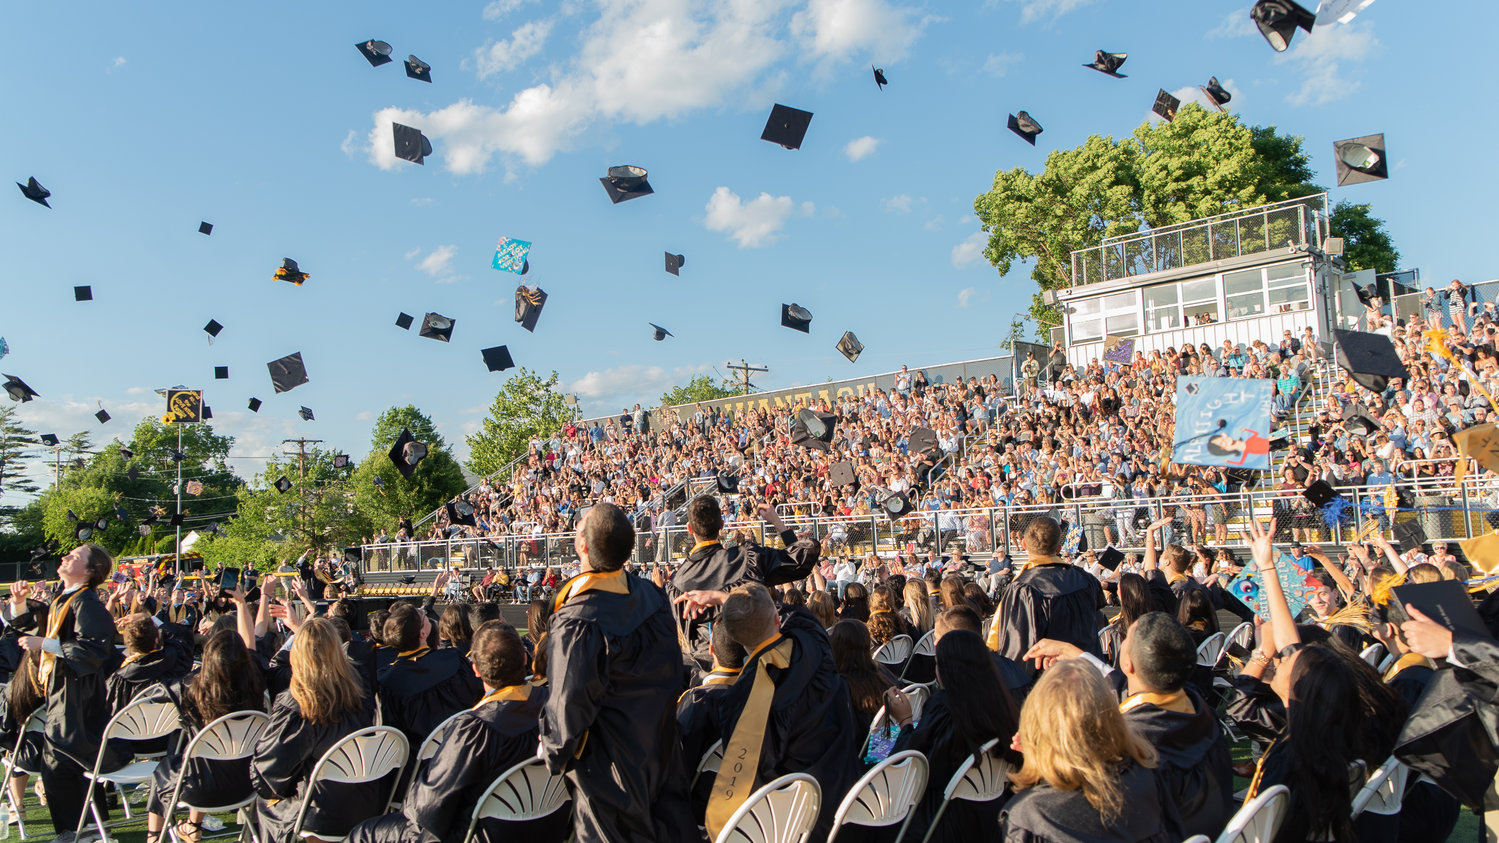 Wantagh High School graduates celebrated the traditional way at the end of the graduation ceremony on June 14.